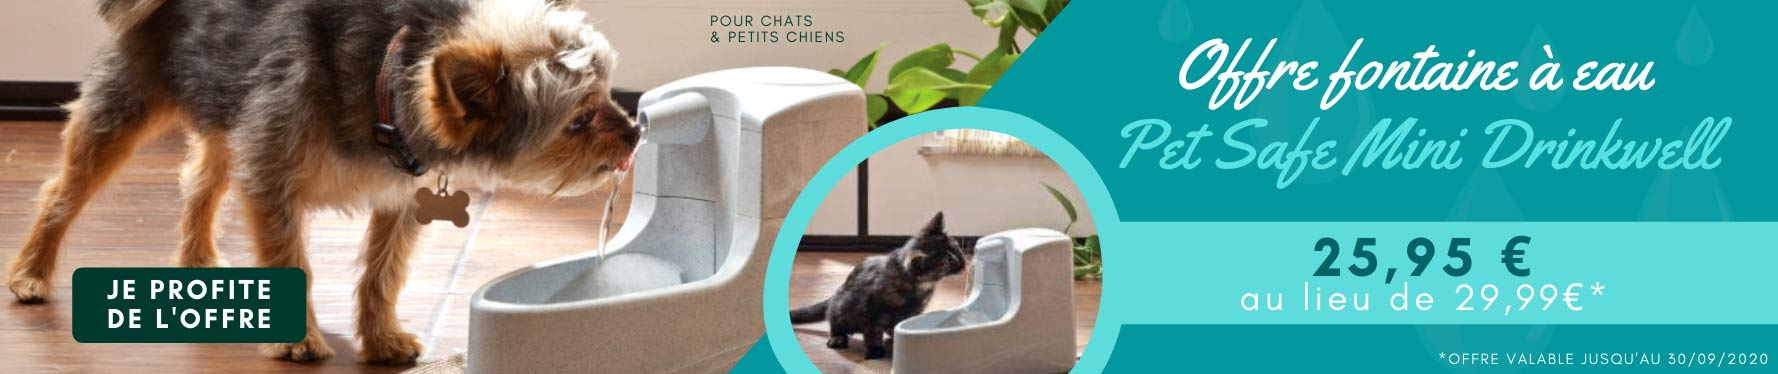 Offre Fontaine Pet Safe Mini Drinkwell